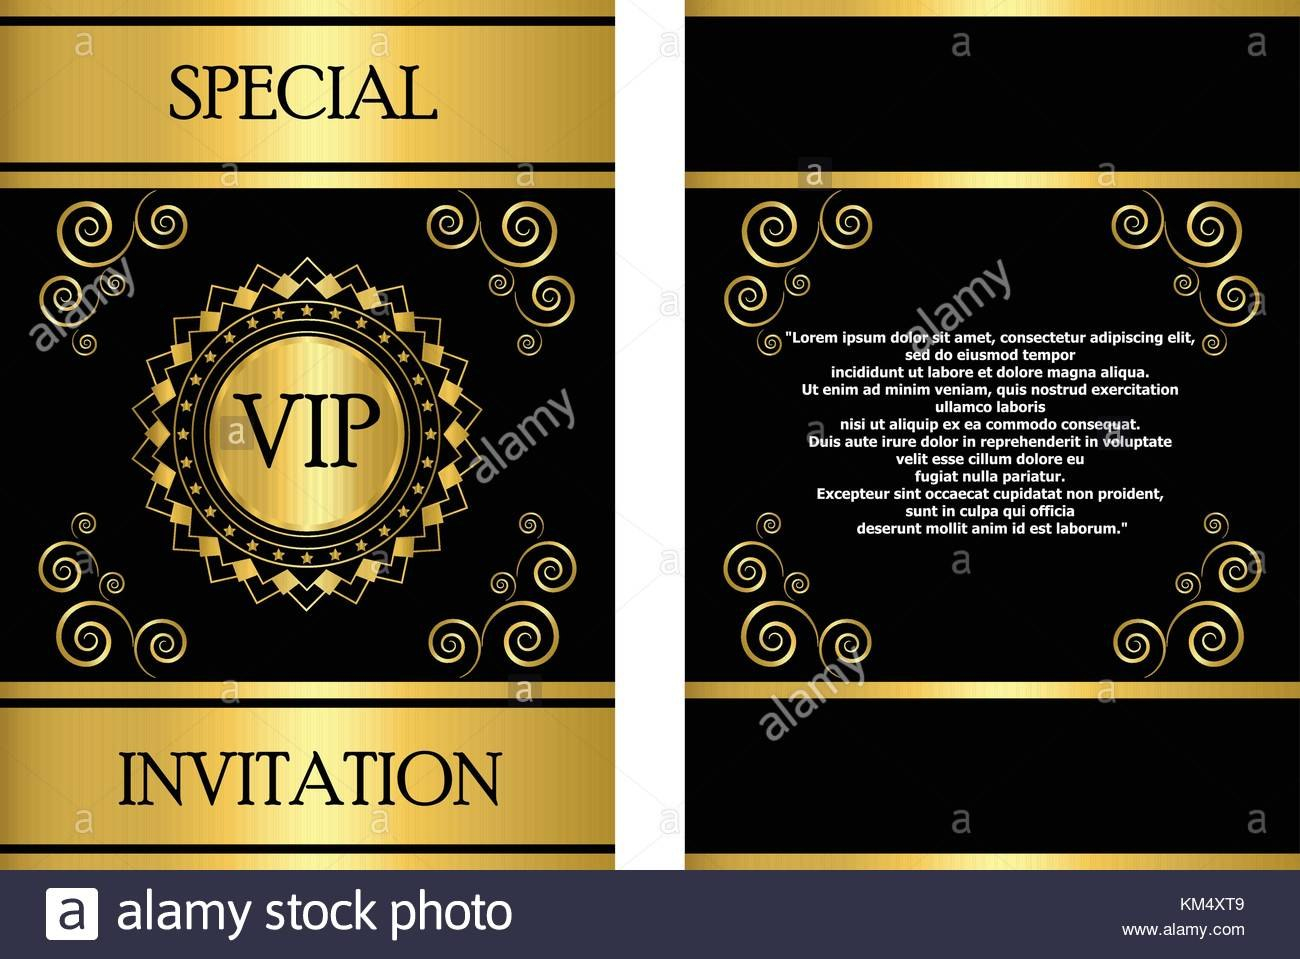 A Golden Vip Invitation Card Template That Can Be Used For Stock Regarding Event Invitation Card Template